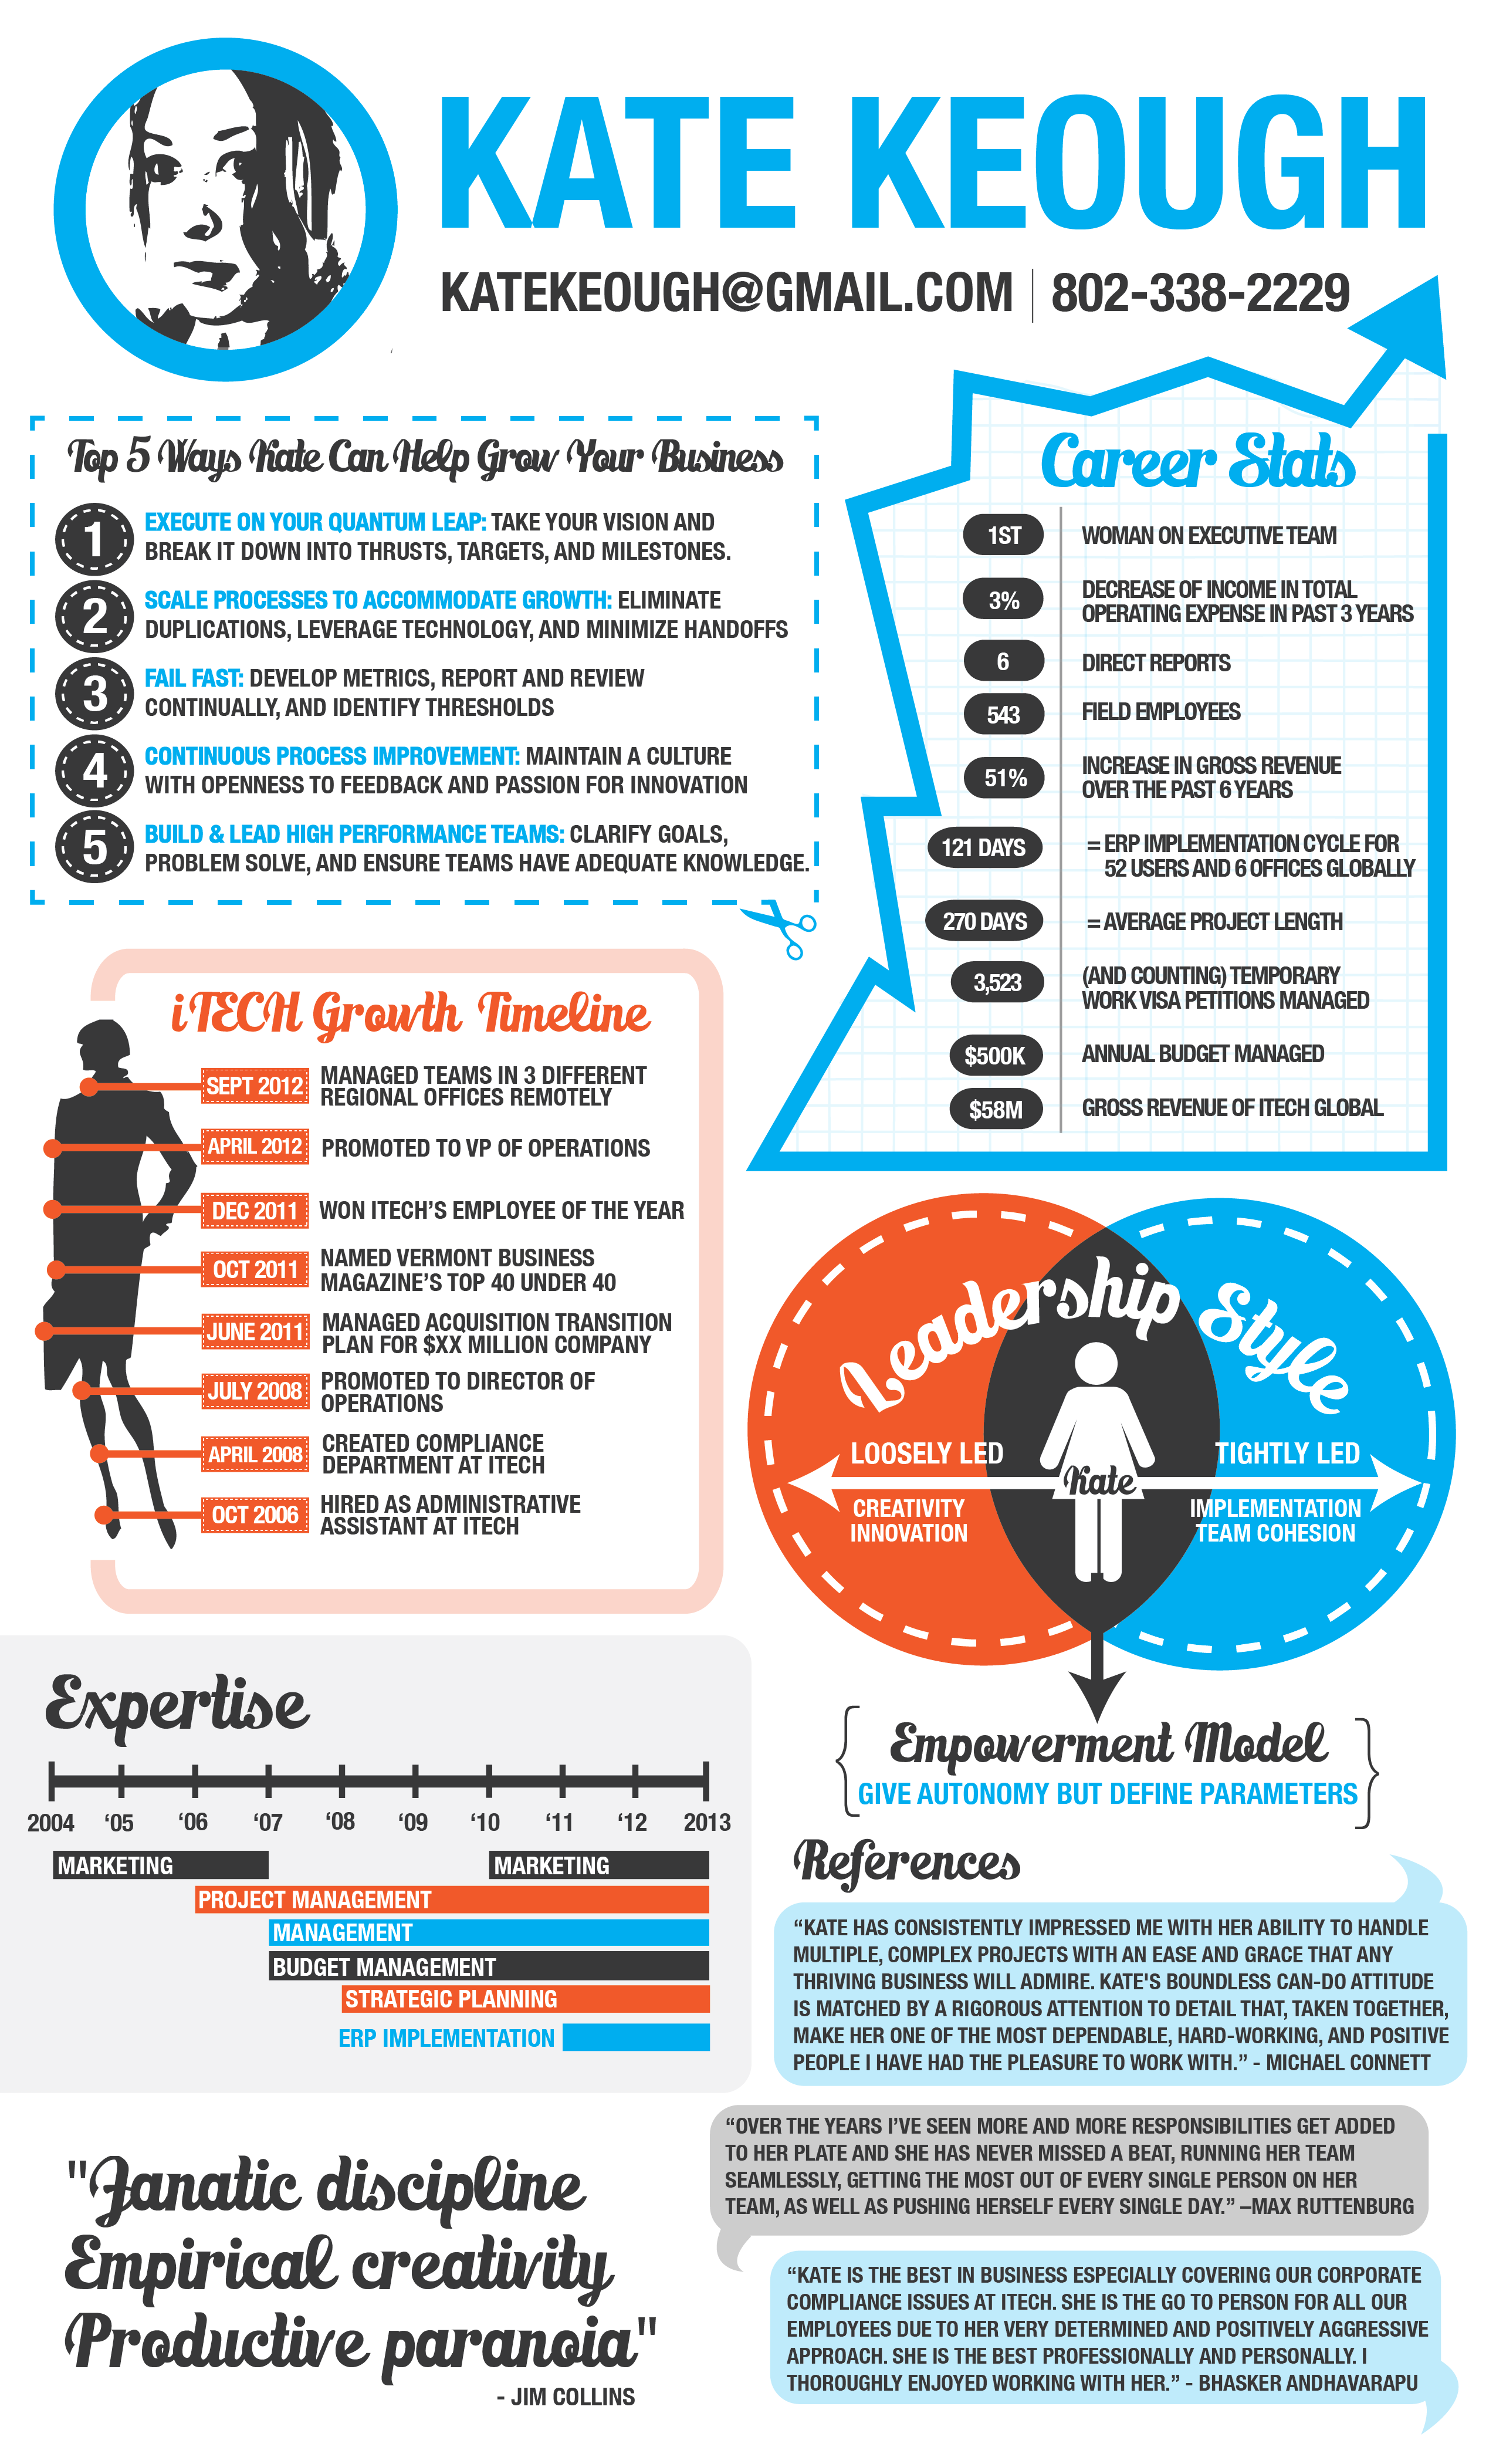 How To Design An Infographic Resume Infographic Resume Cv Infographic Graphic Design Resume